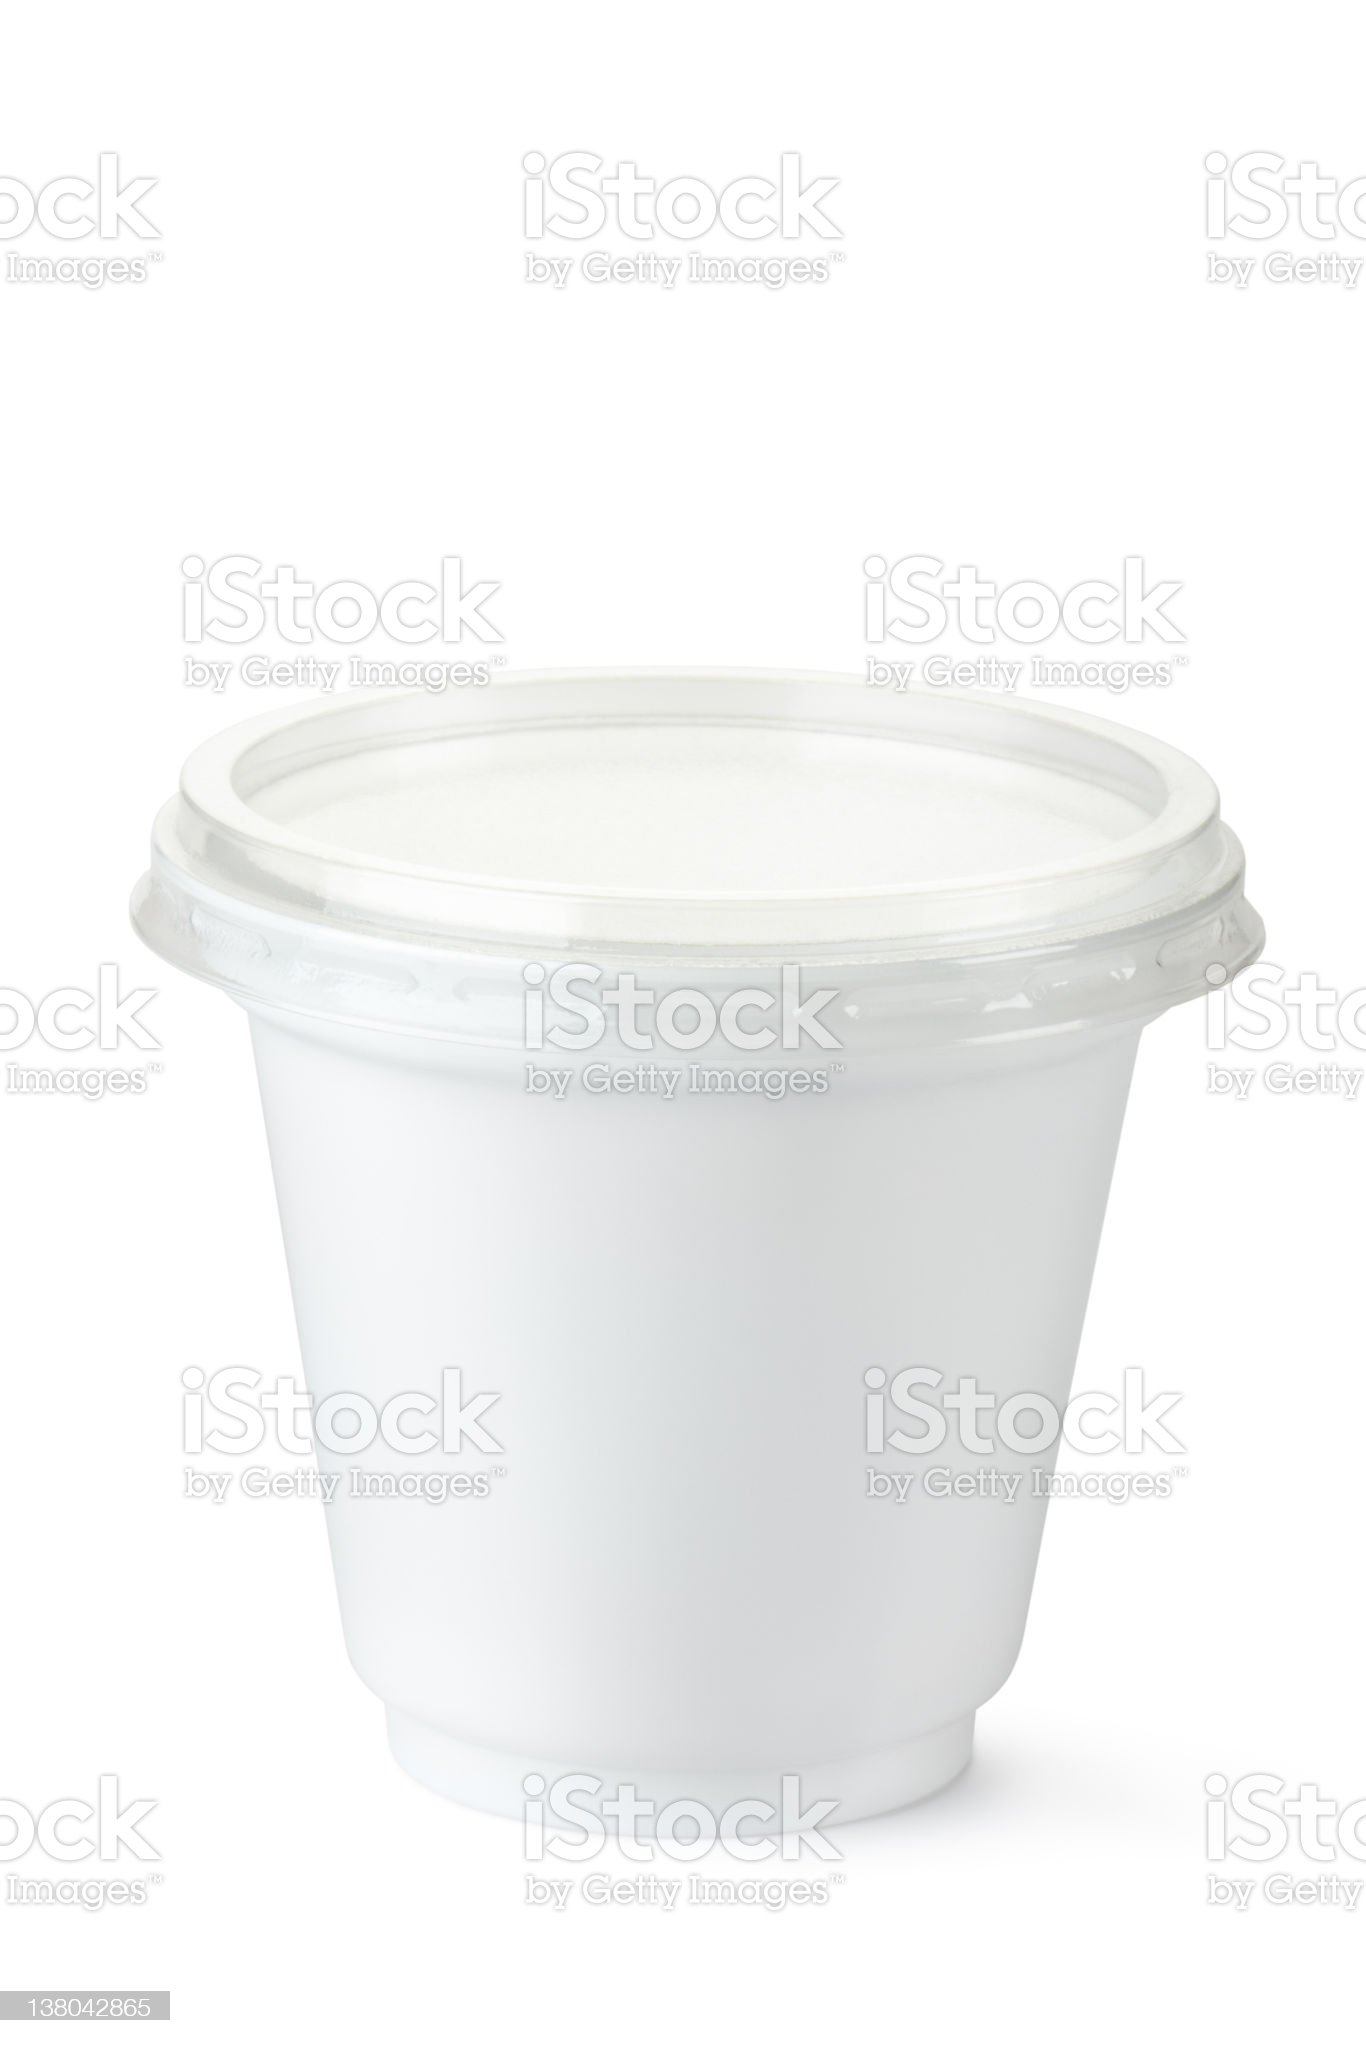 Plastic container for dairy foods royalty-free stock photo